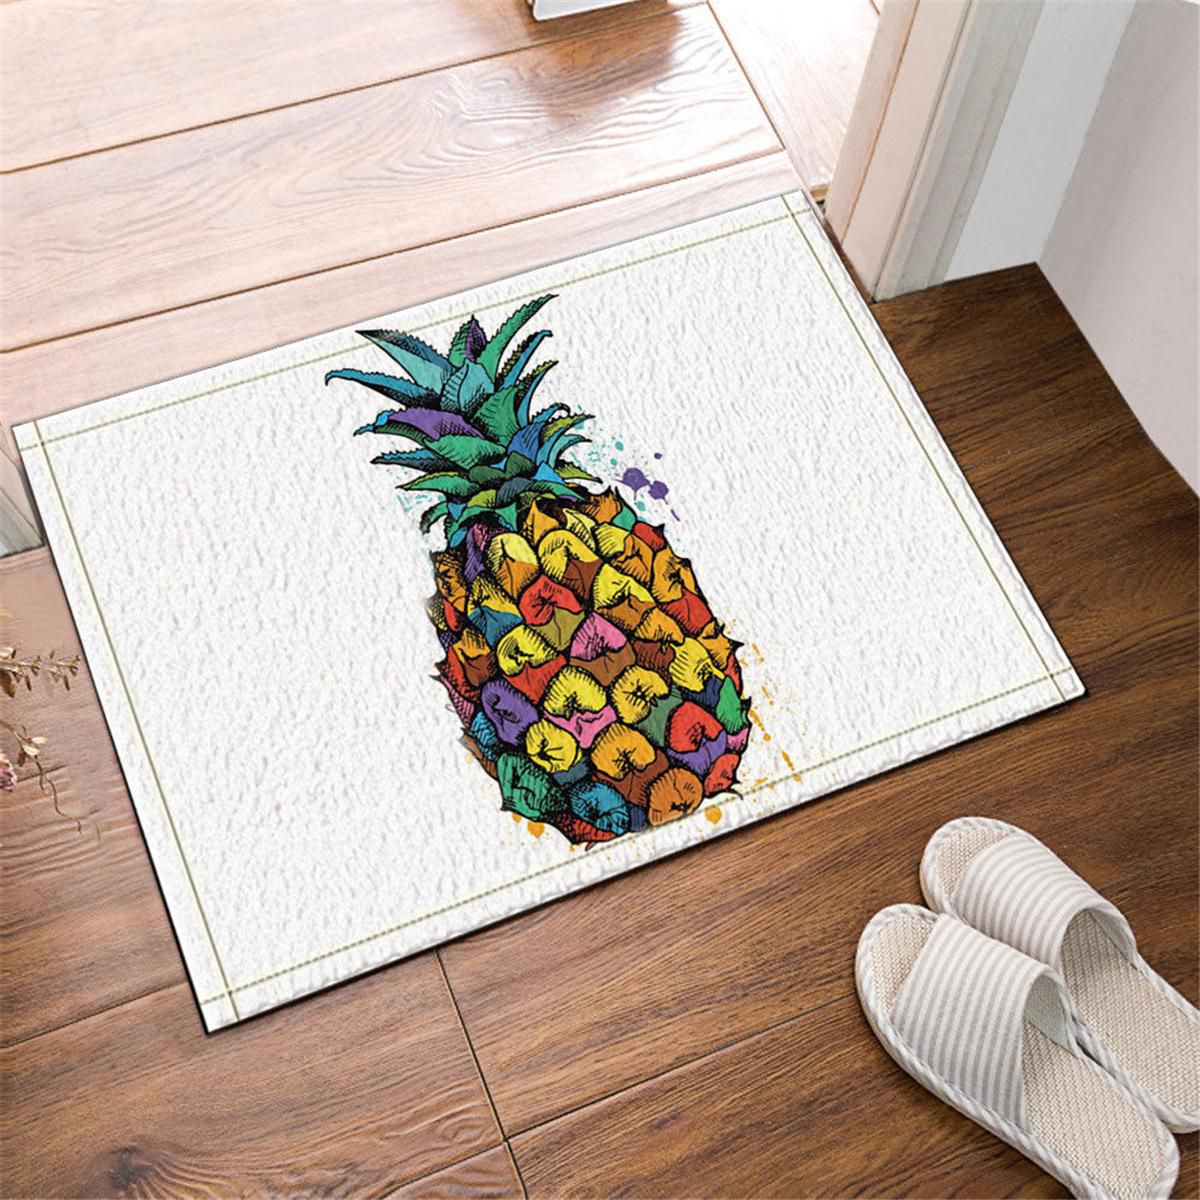 180 180cm Colorful Pineapple Polyester Bathroom Shower